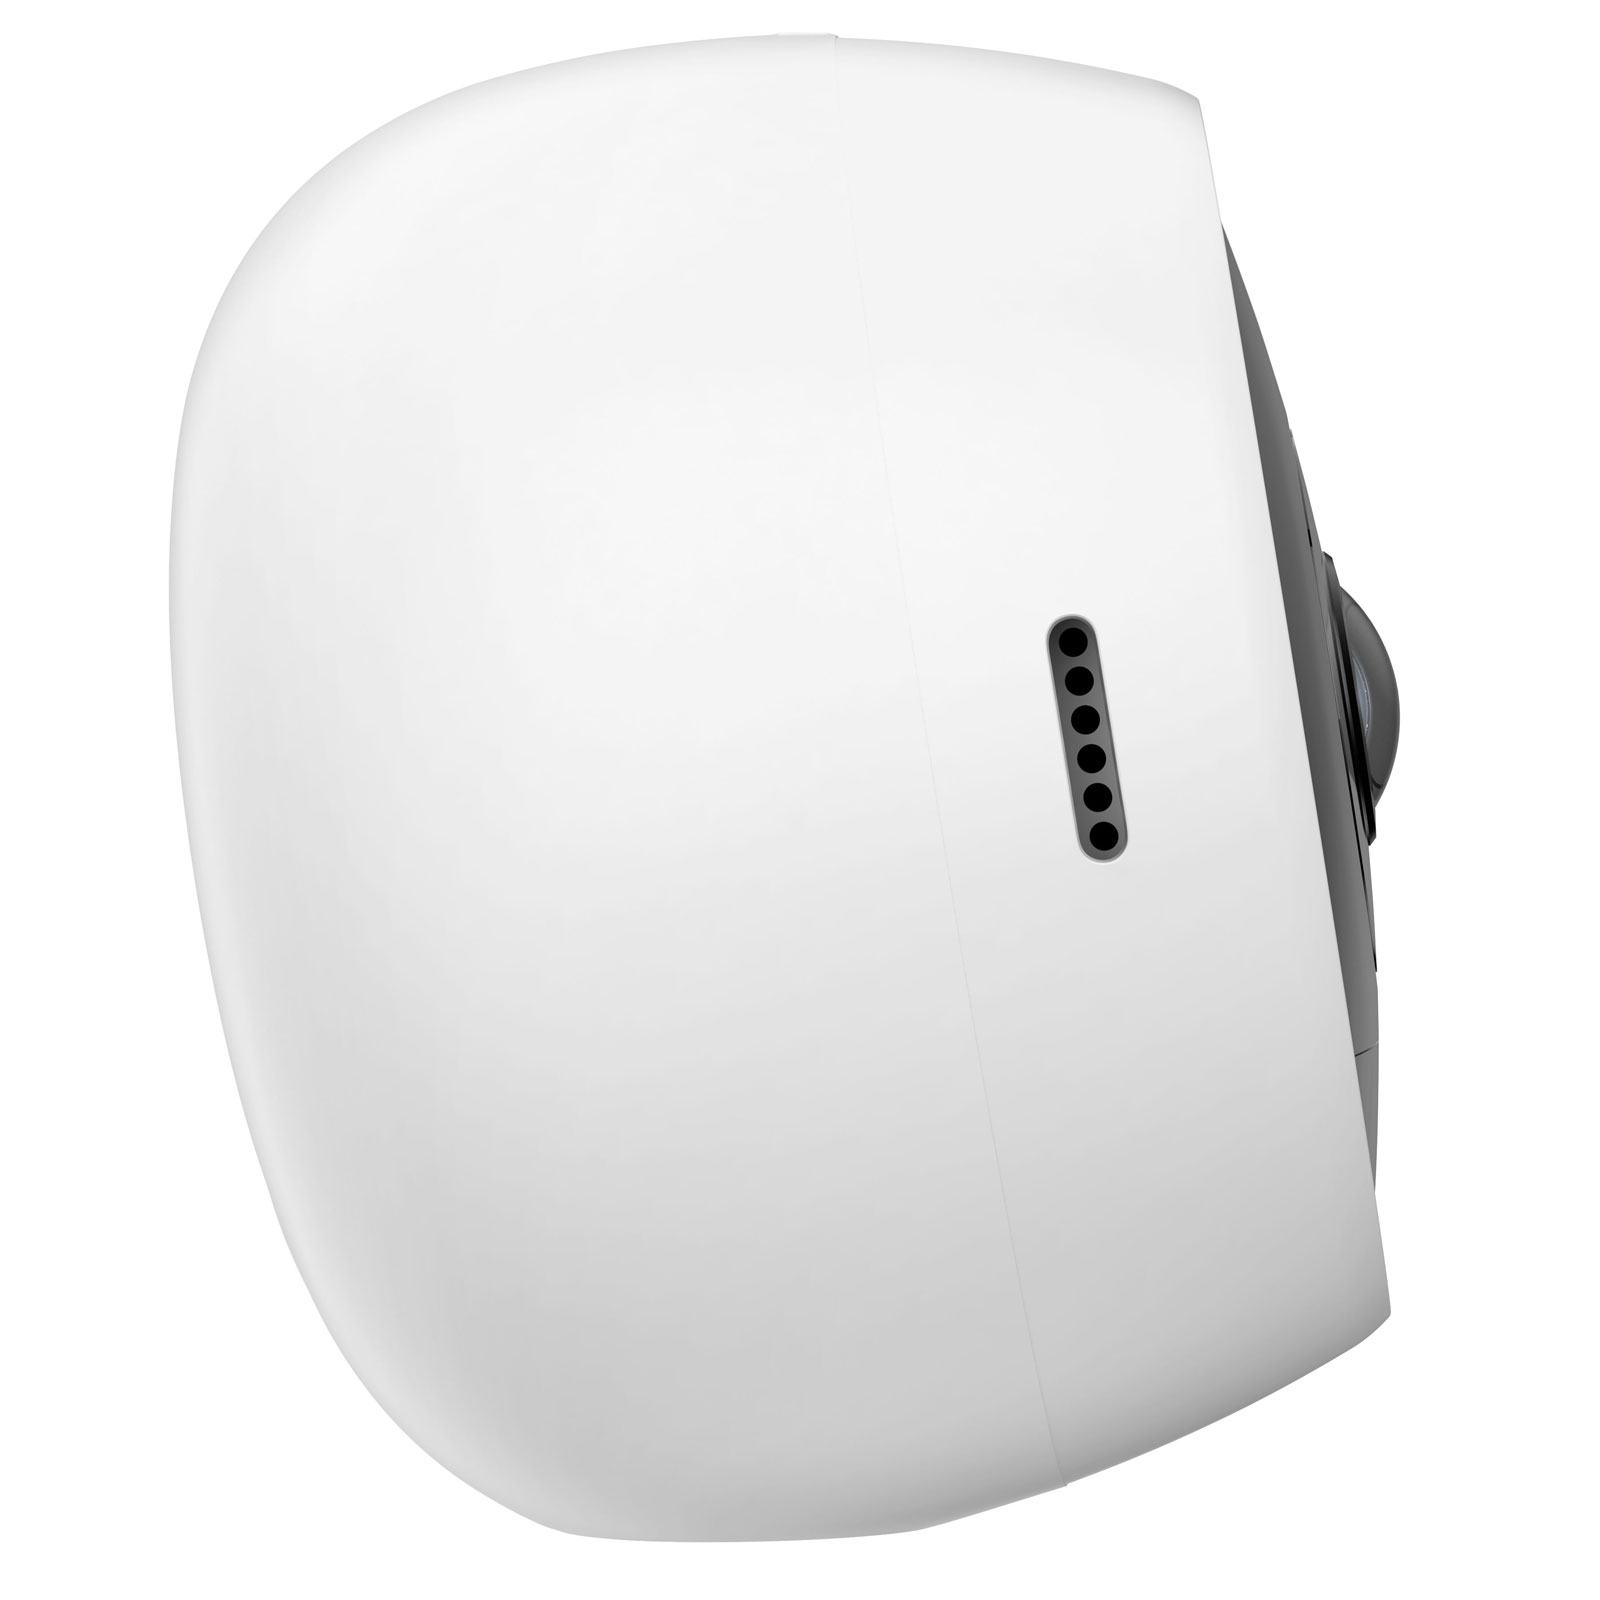 Camera Exterieur Logitech Logitech Circle 2 Wireless Blanc Caméra De Surveillance